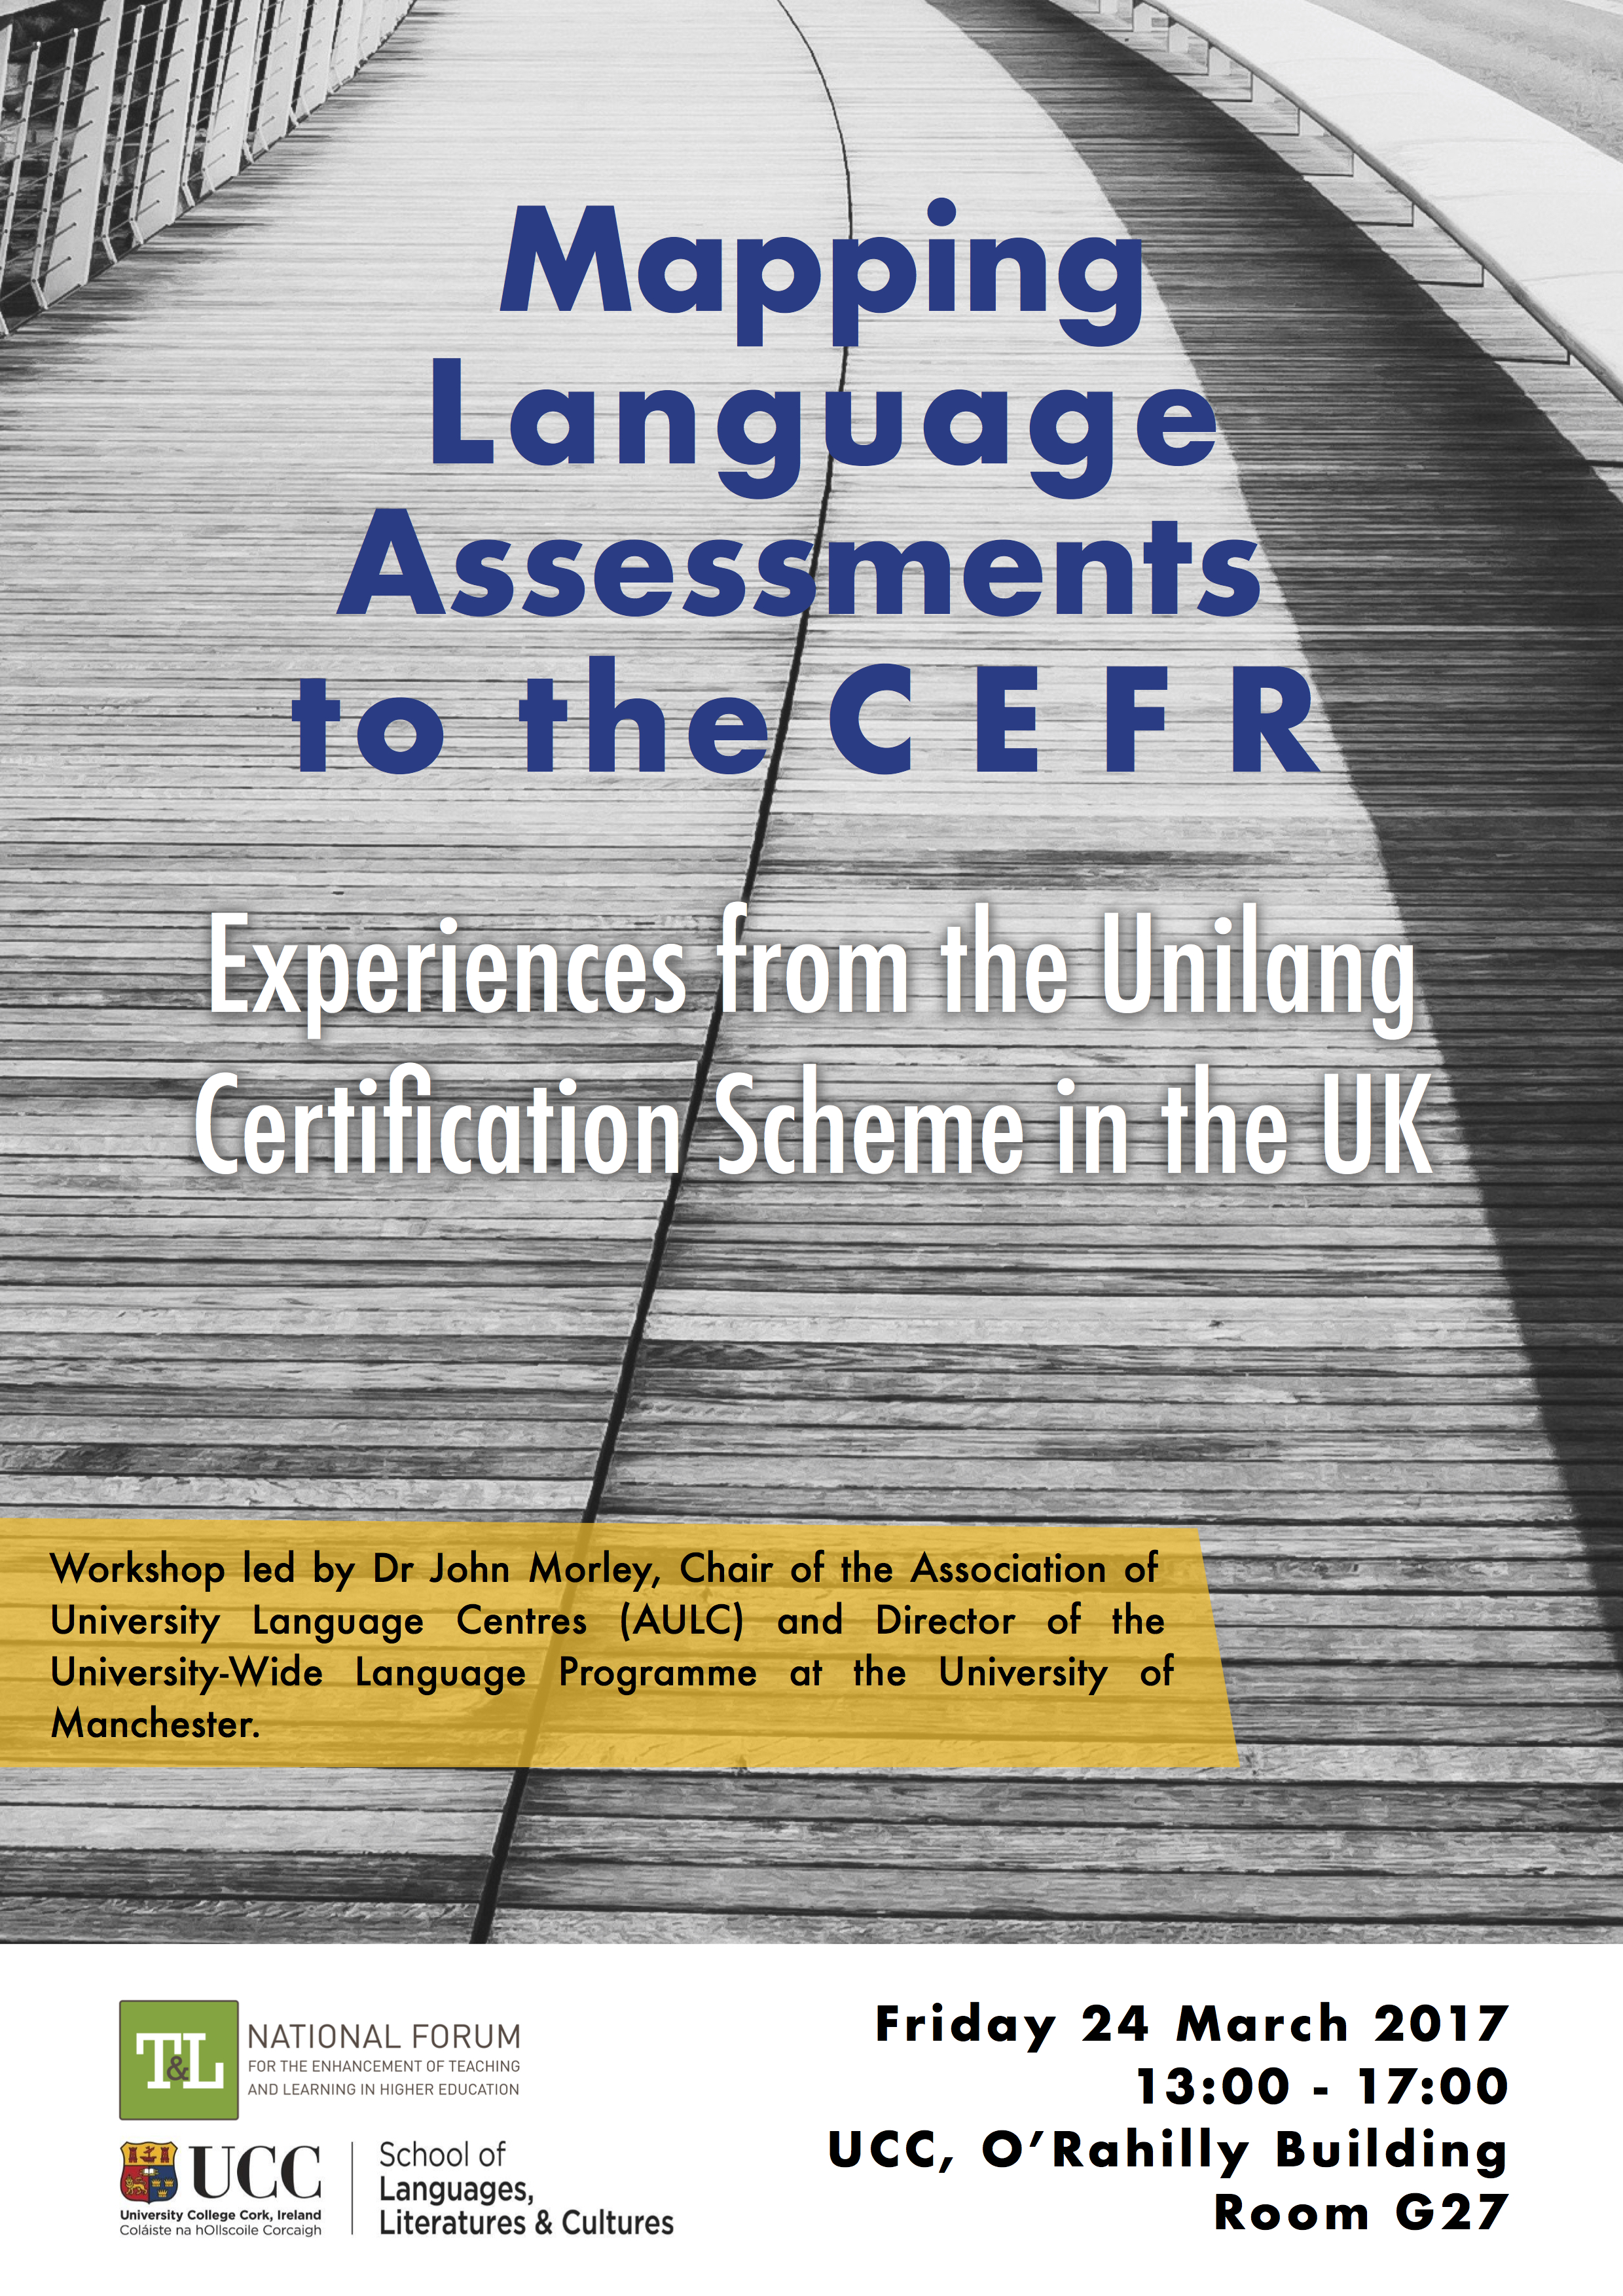 Mapping Language Assessments to the CEFR